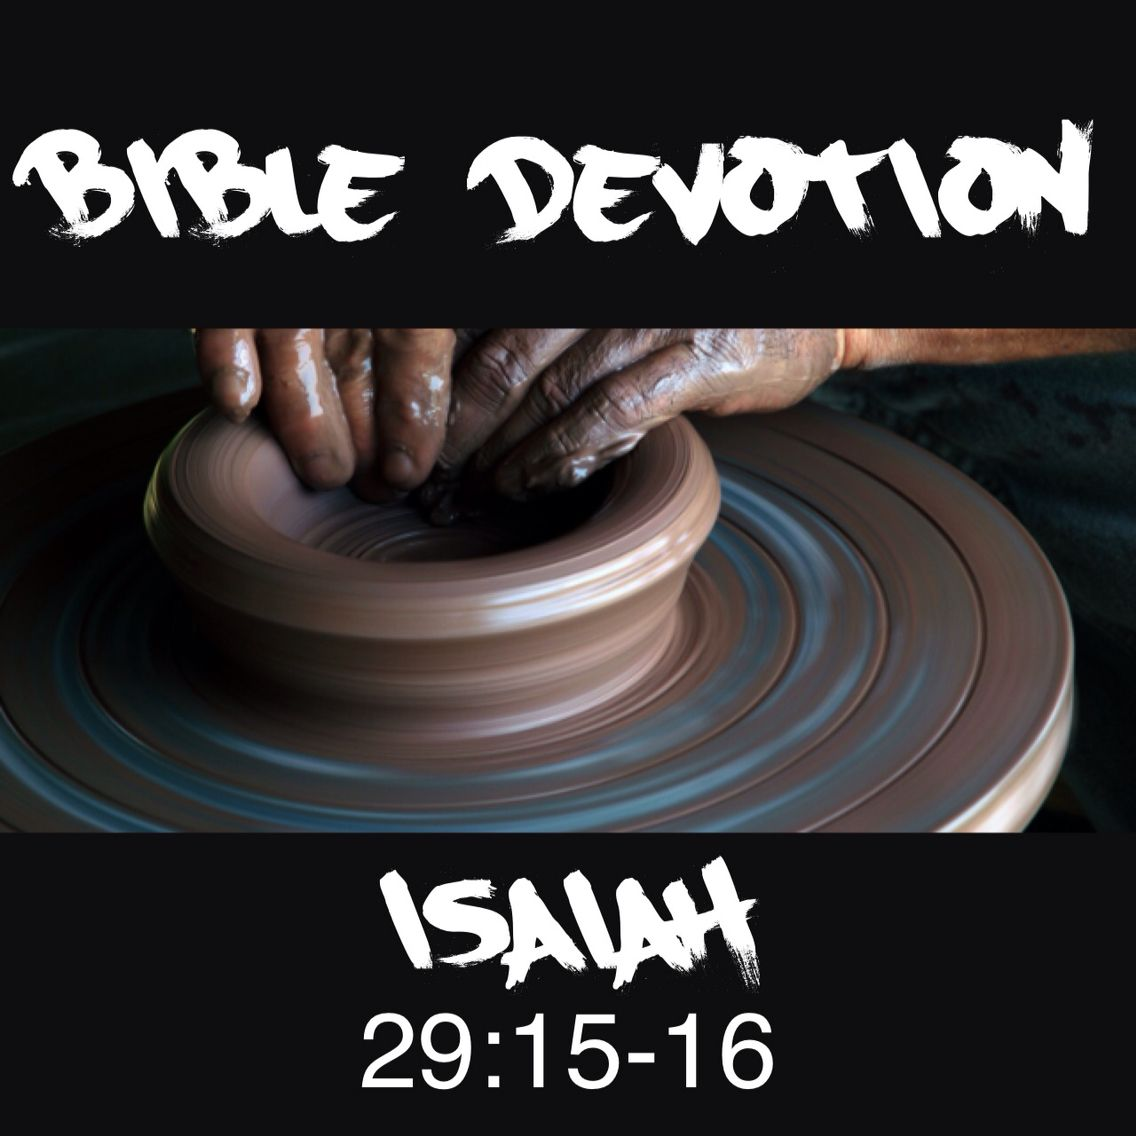 Image result for Isaiah 29:15-16